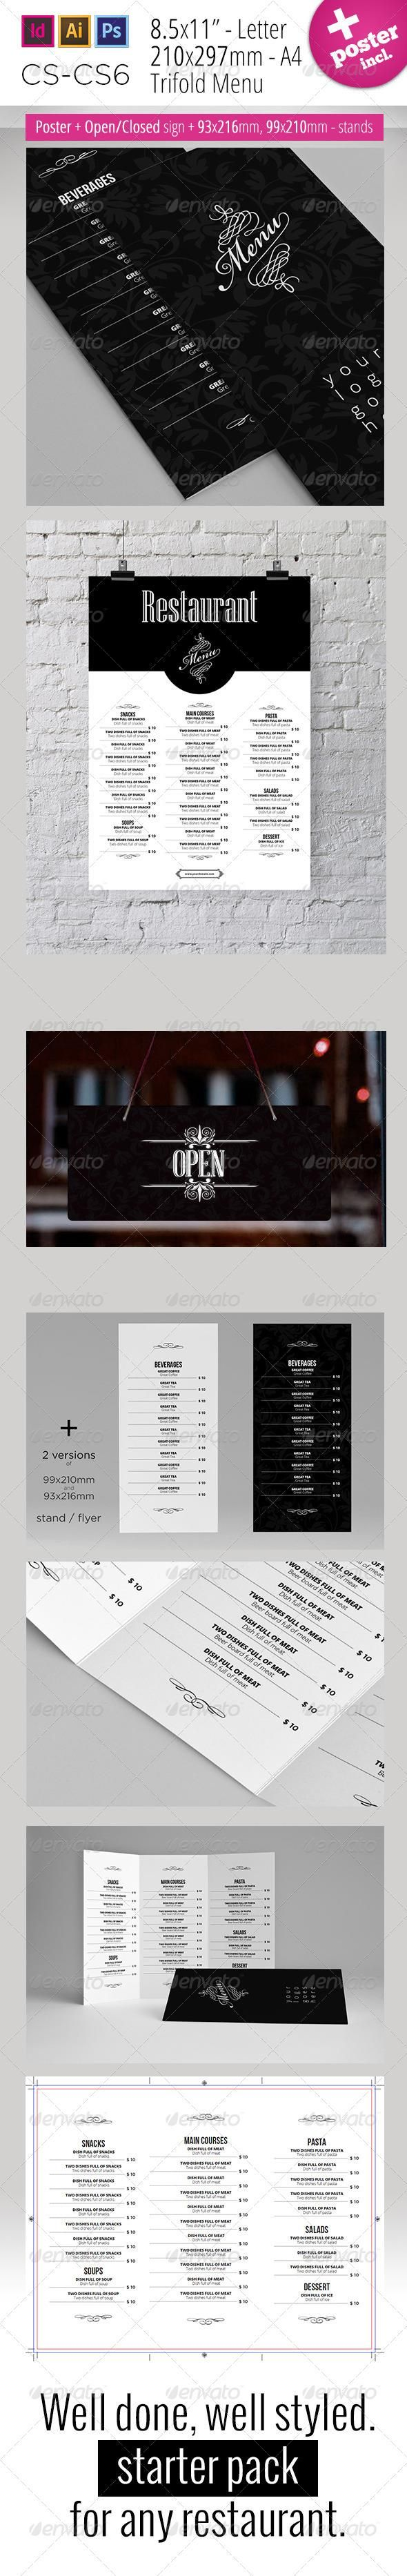 18 best menu designs images on pinterest restaurant menu design